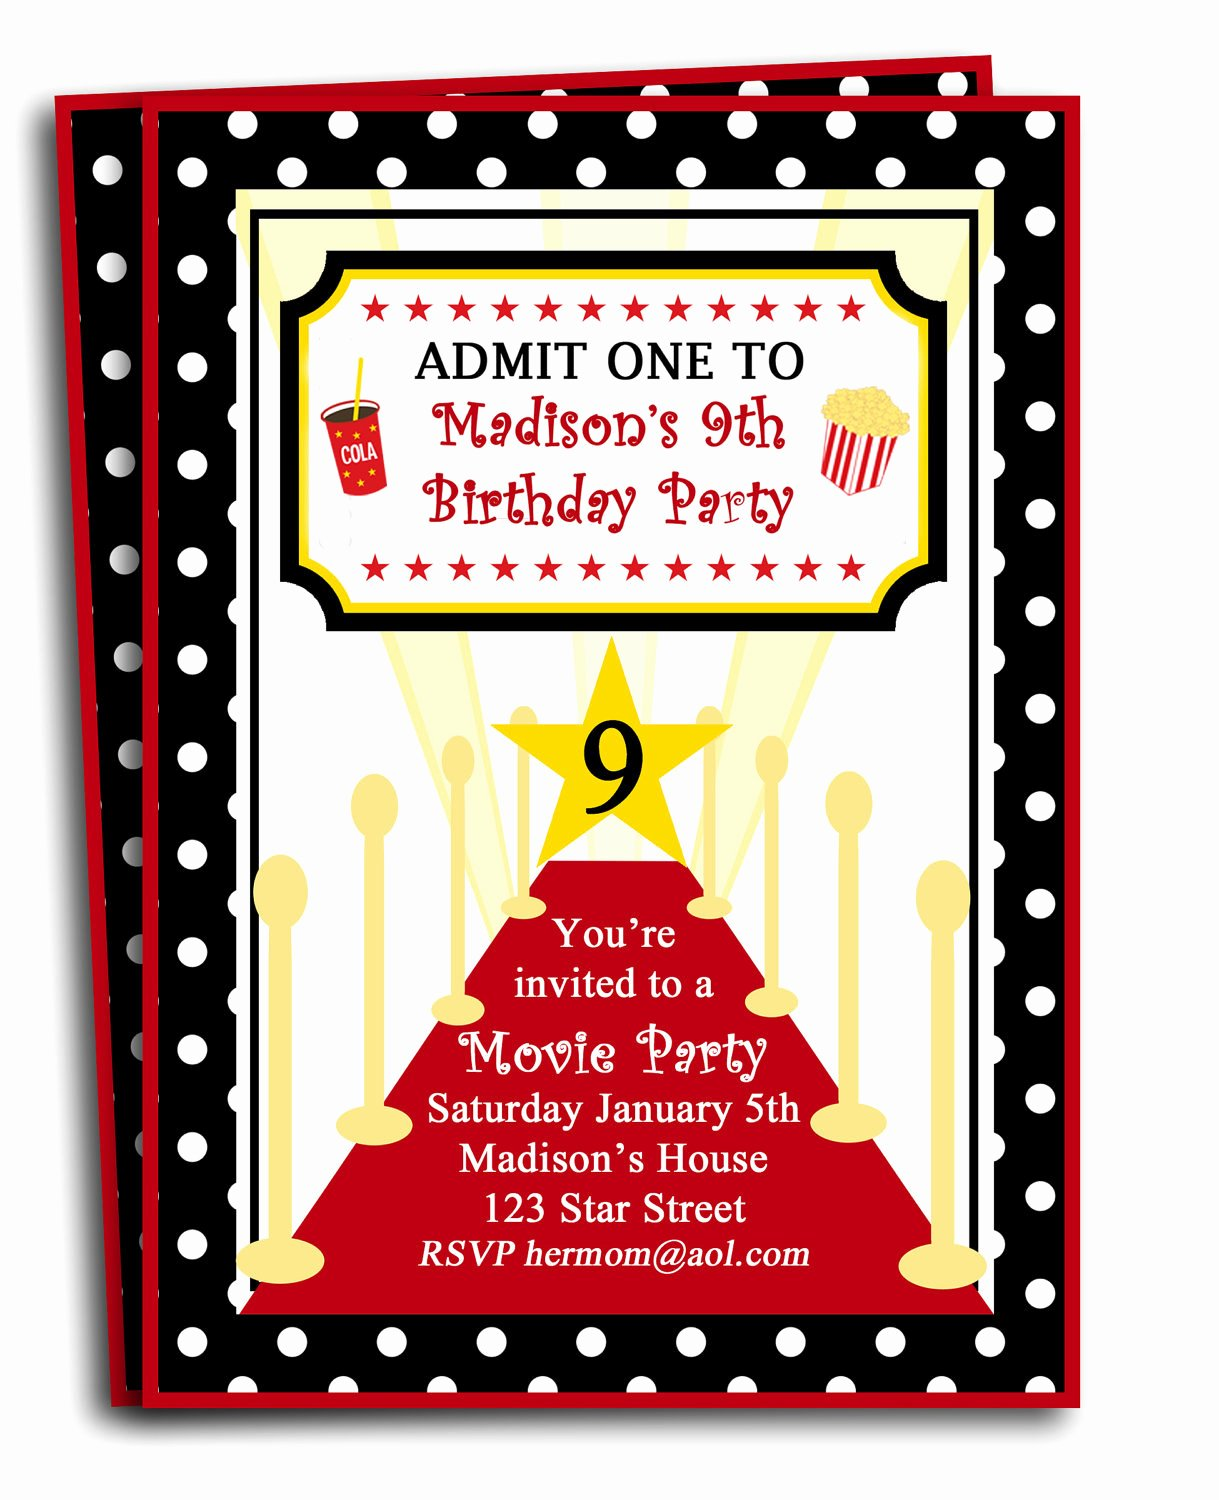 Red Carpet Invitation Template Best Of Red Carpet Party Invitation Printable or Printed with Free